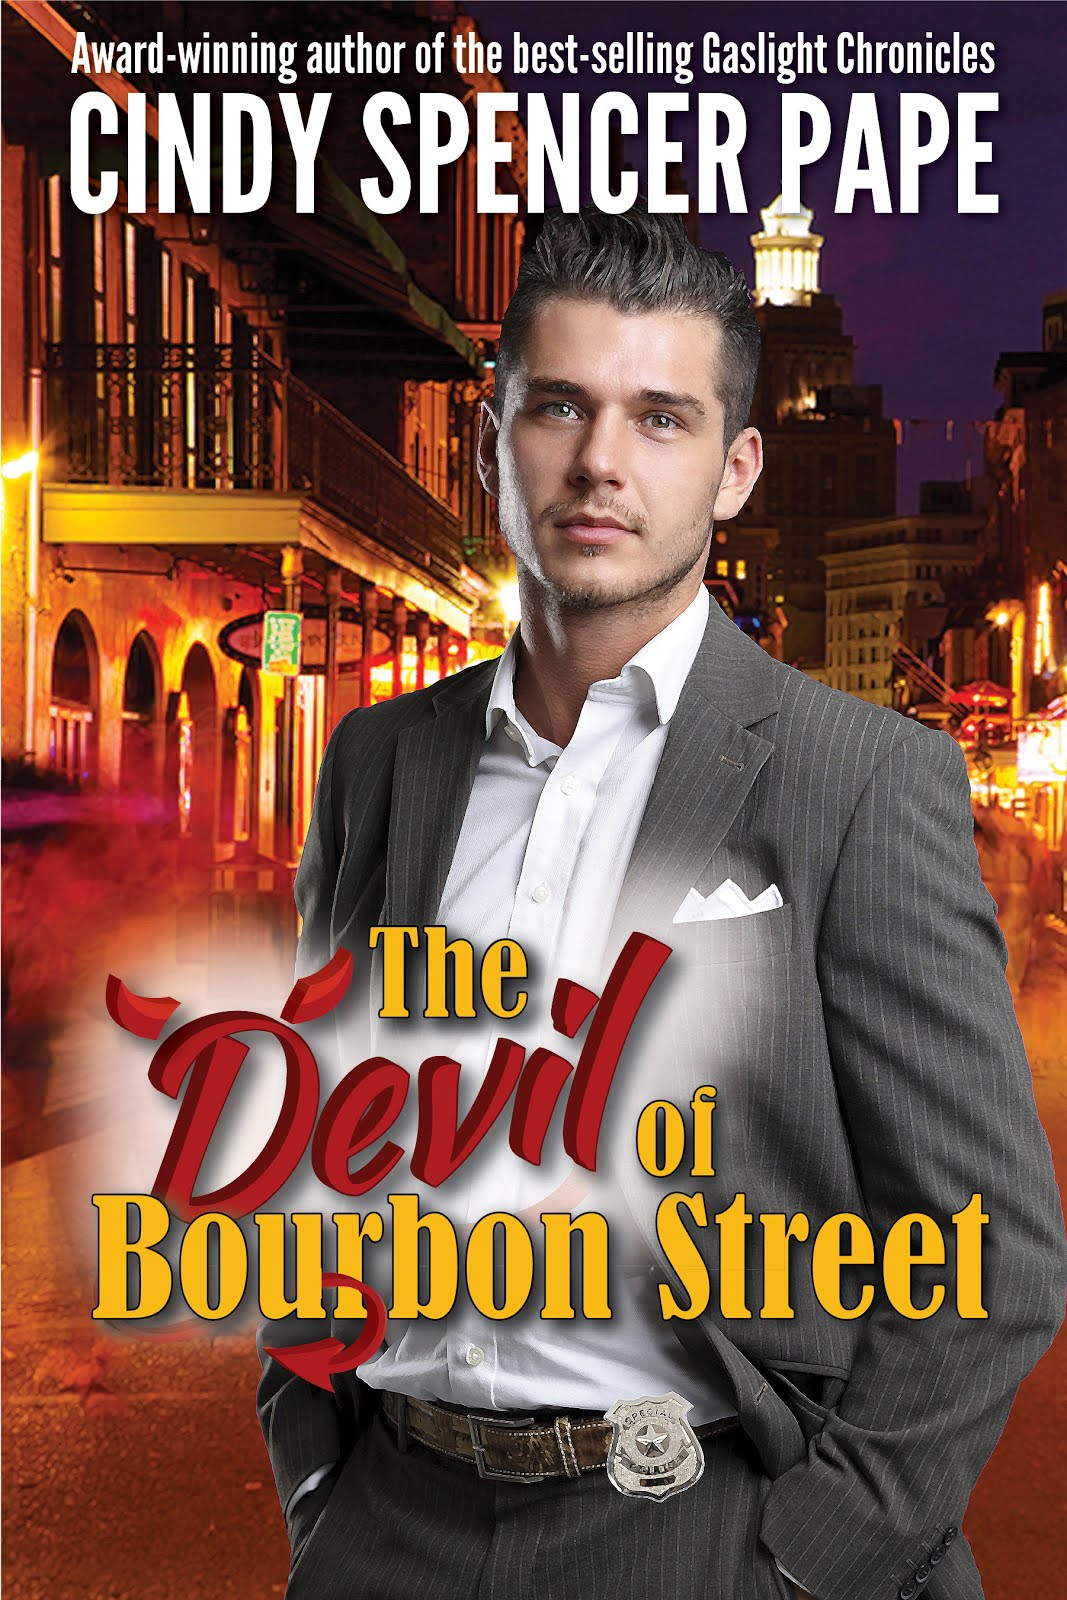 The Devil of Bourbon Street